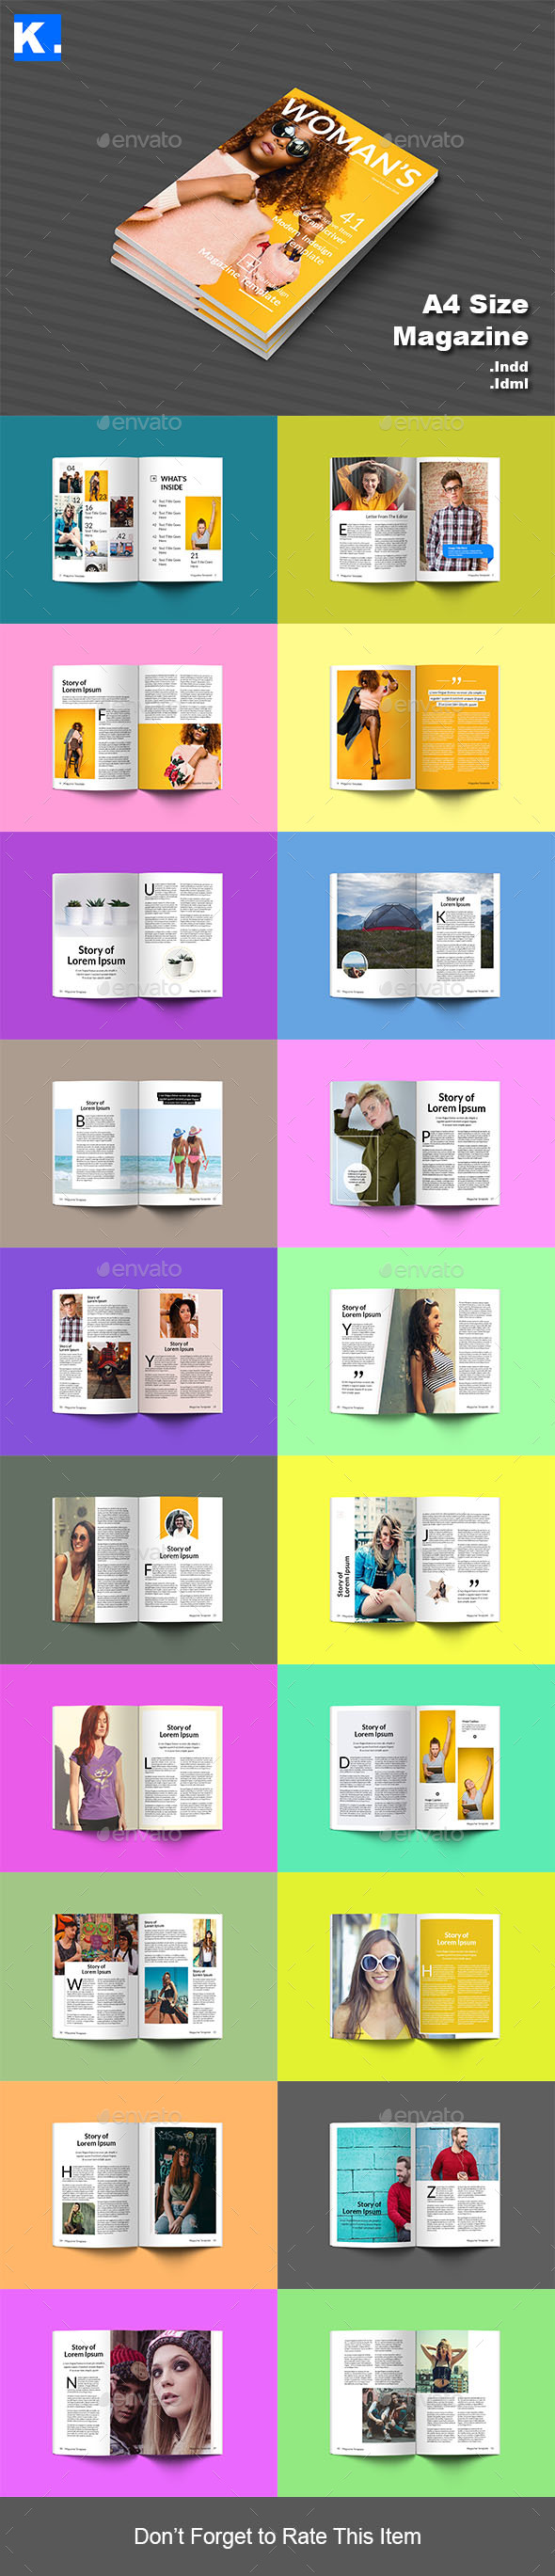 Indesign Magazine Template 8 - Magazines Print Templates